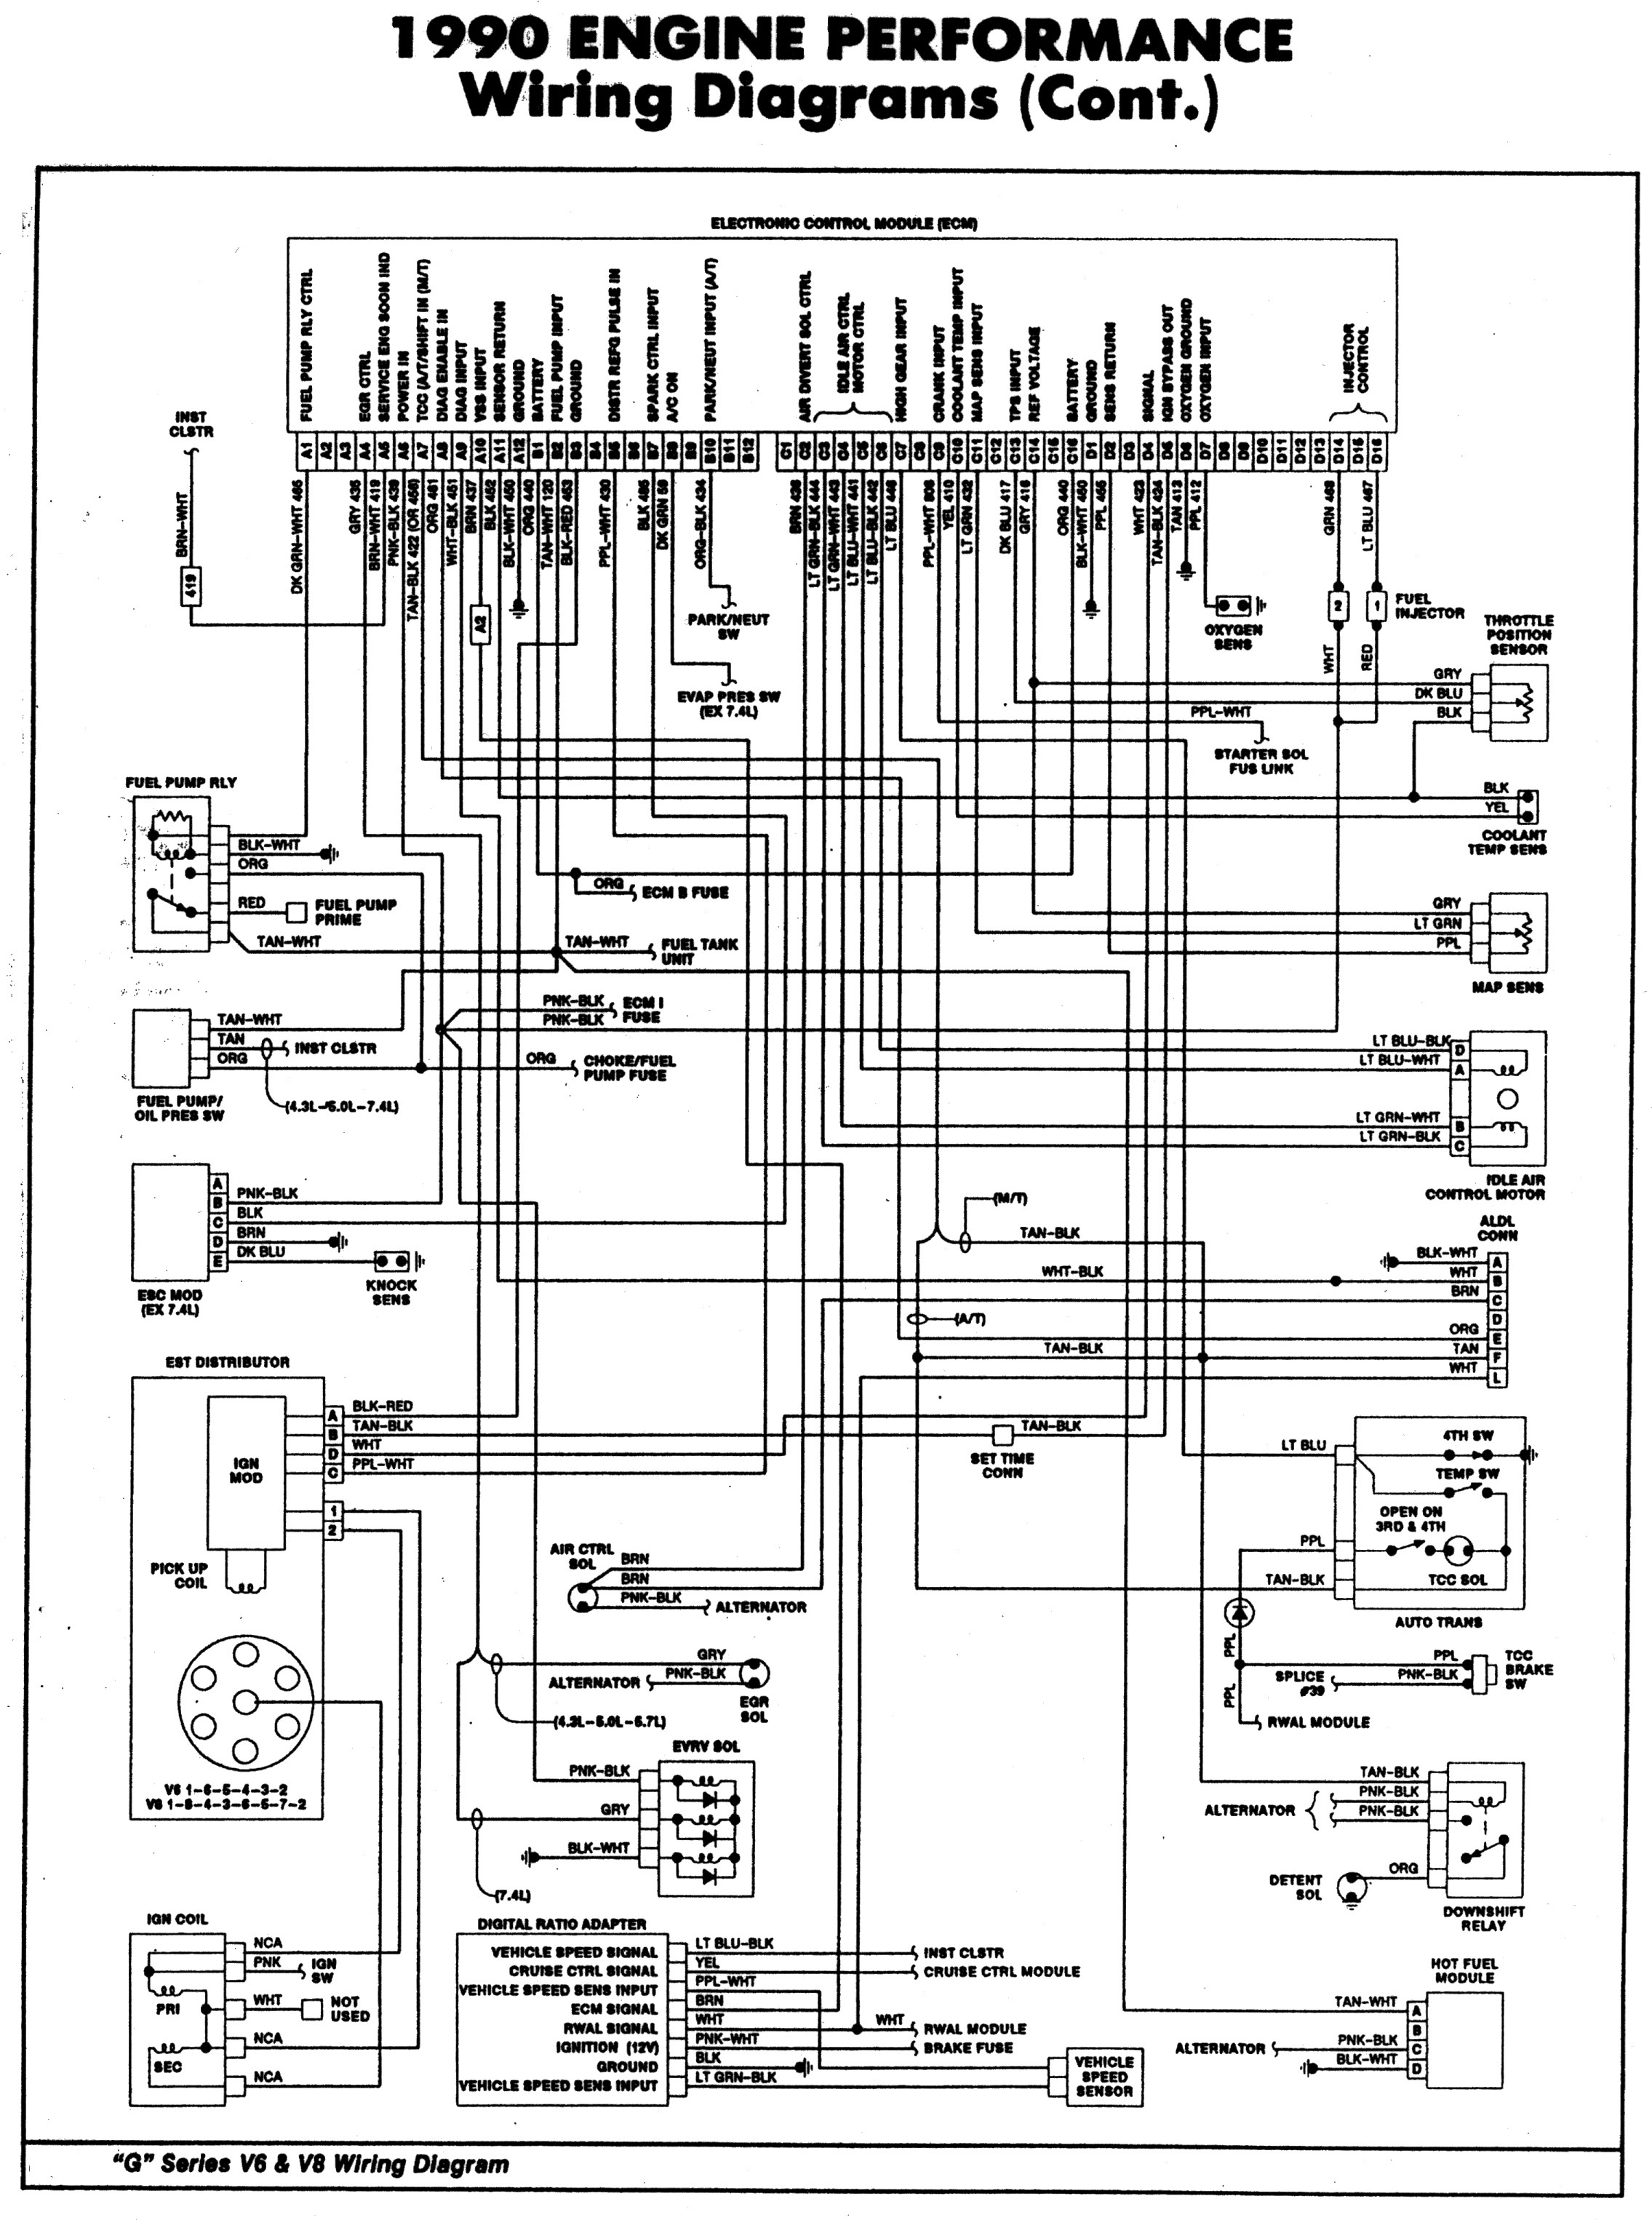 hight resolution of 91 chevy lumina wiring diagram wiring diagram data today 1990 chevy lumina engine diagram